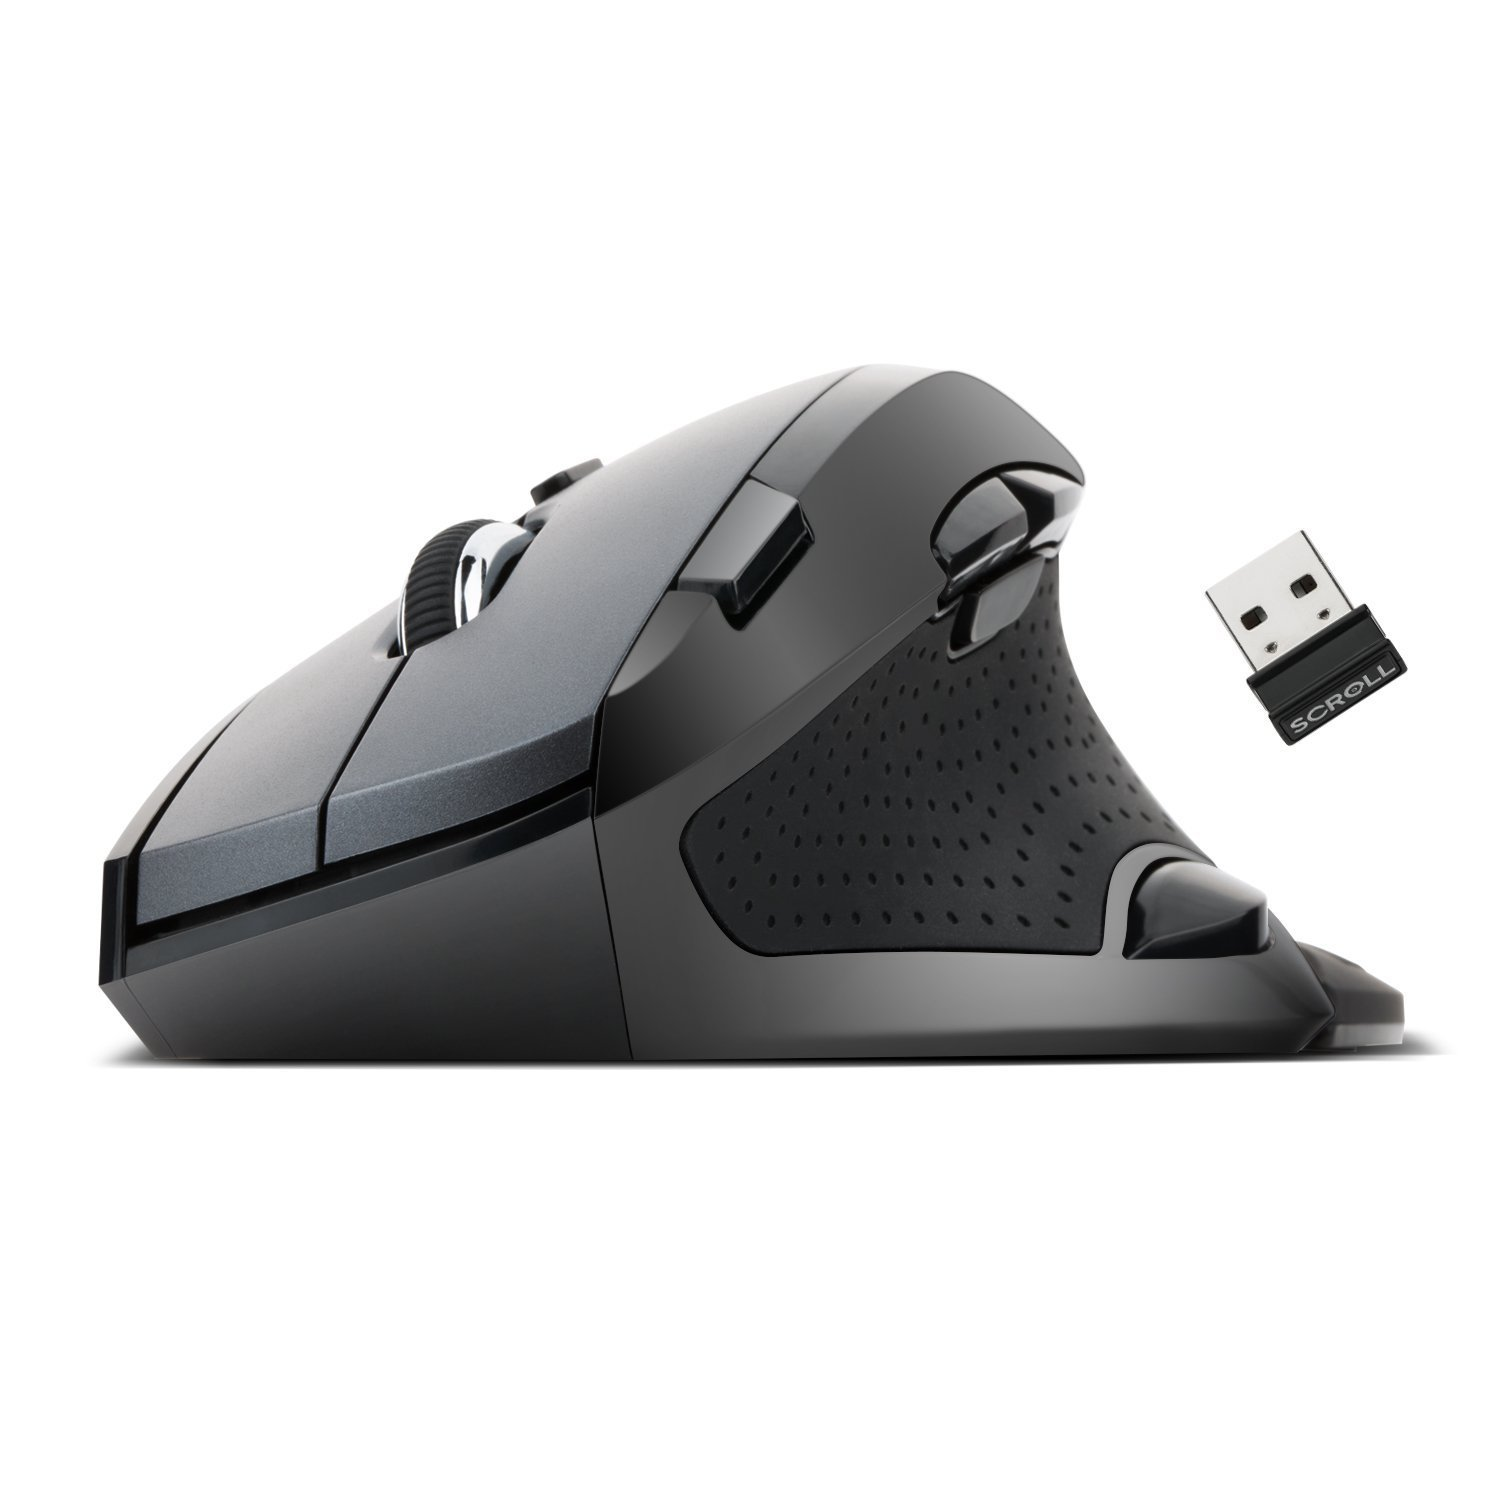 Etekcity Scroll M910 Wireless Vertical Mouse (60 Degree): 9 Clickable Function Buttons (Certified Refurbished)